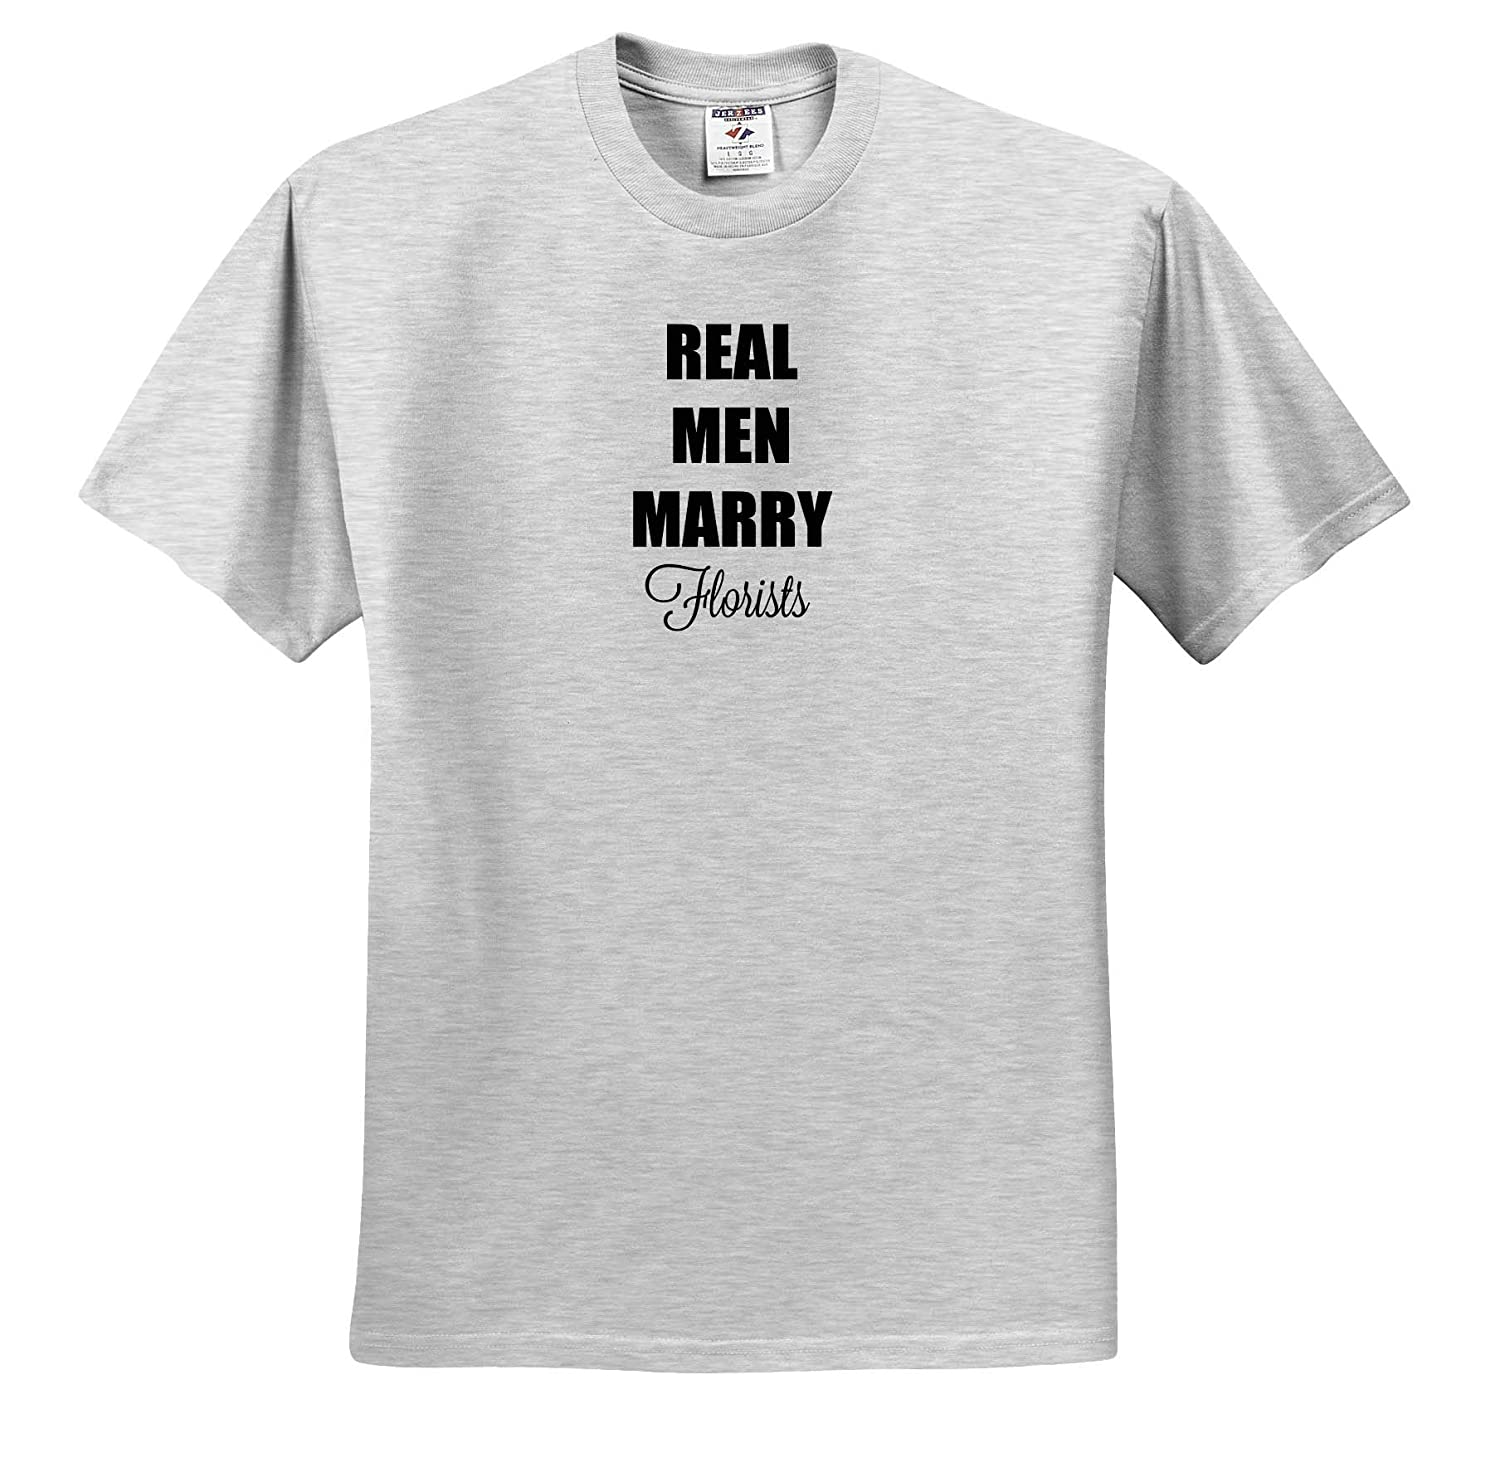 Quote 3dRose Gabriella B T-Shirts Image of Real Men Marry Florists Quote